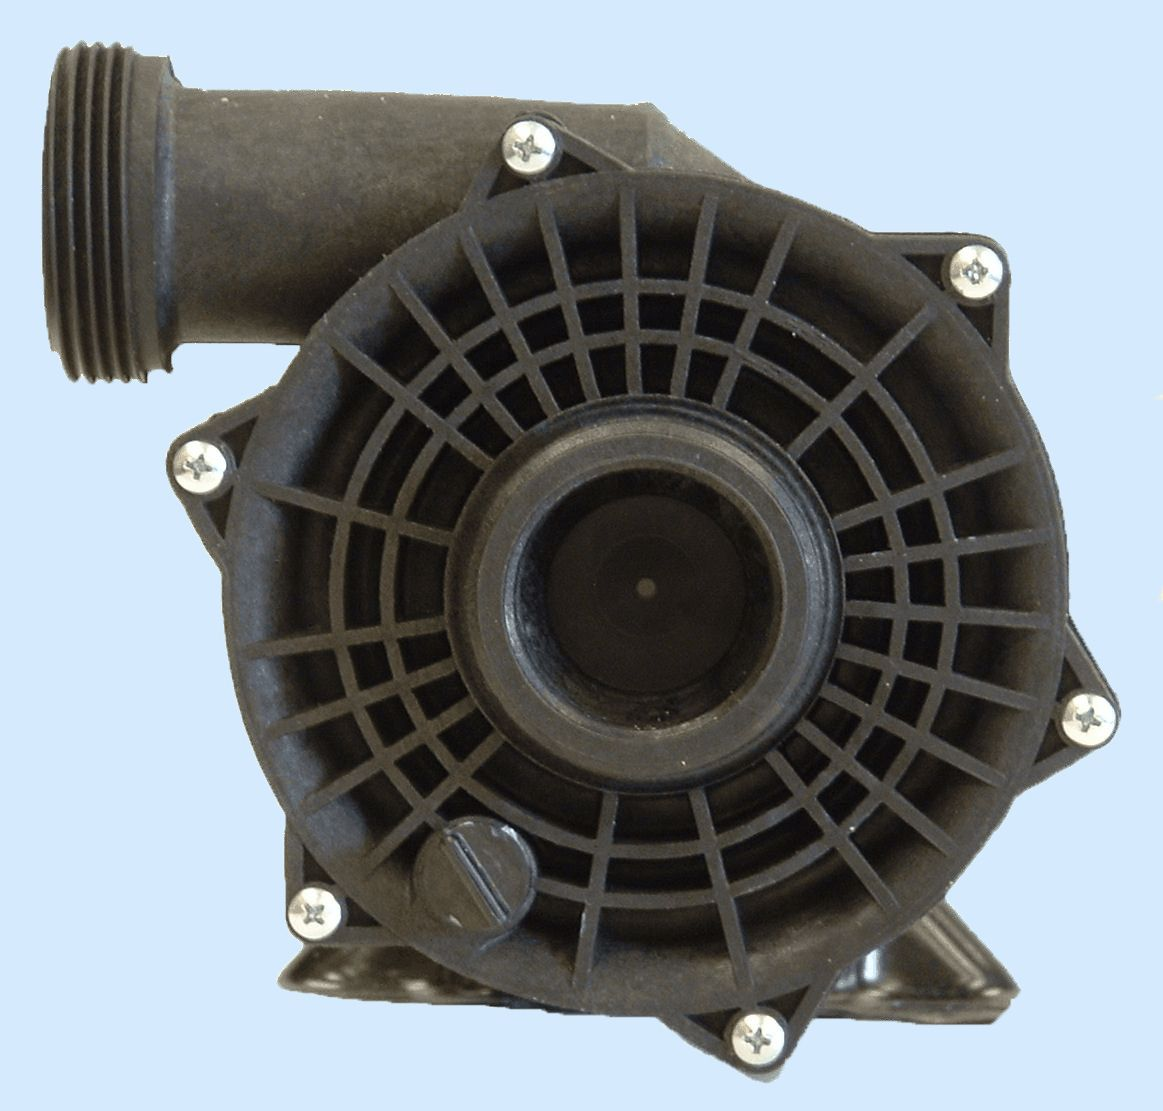 Iron Might Replacement Spa Pump For $114, Iron Might